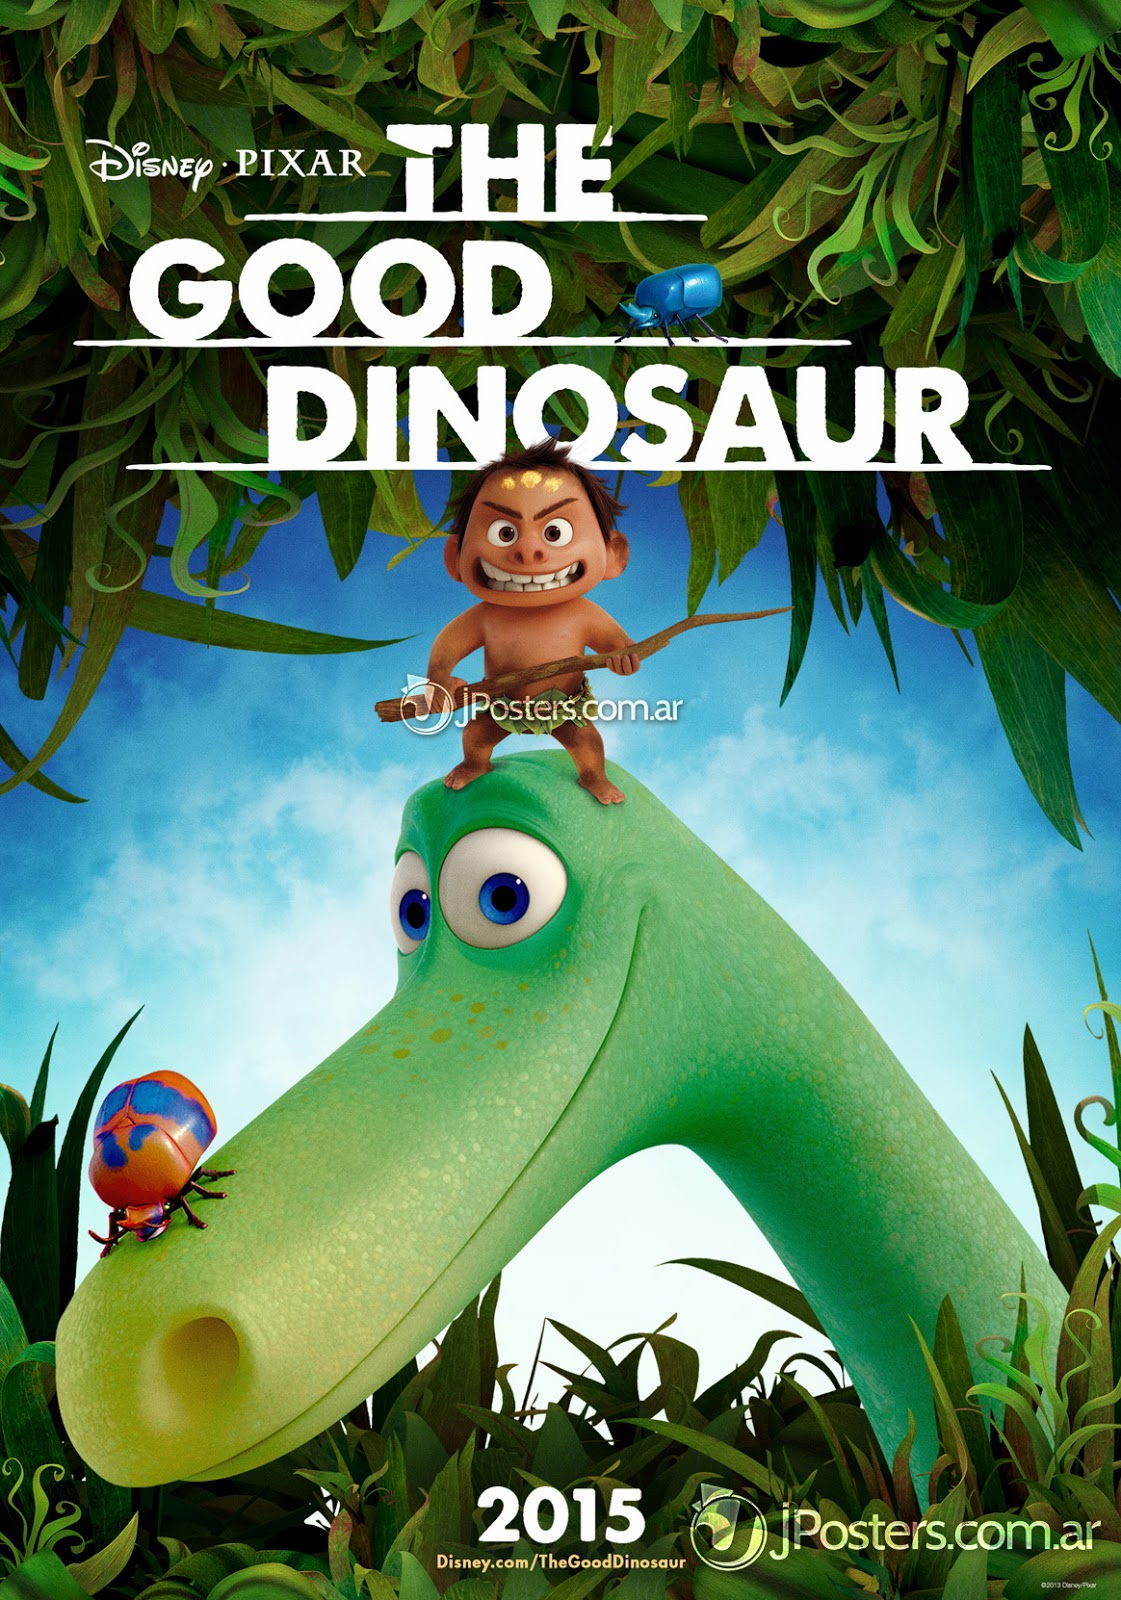 The Good Dinosaur Teaser Poster